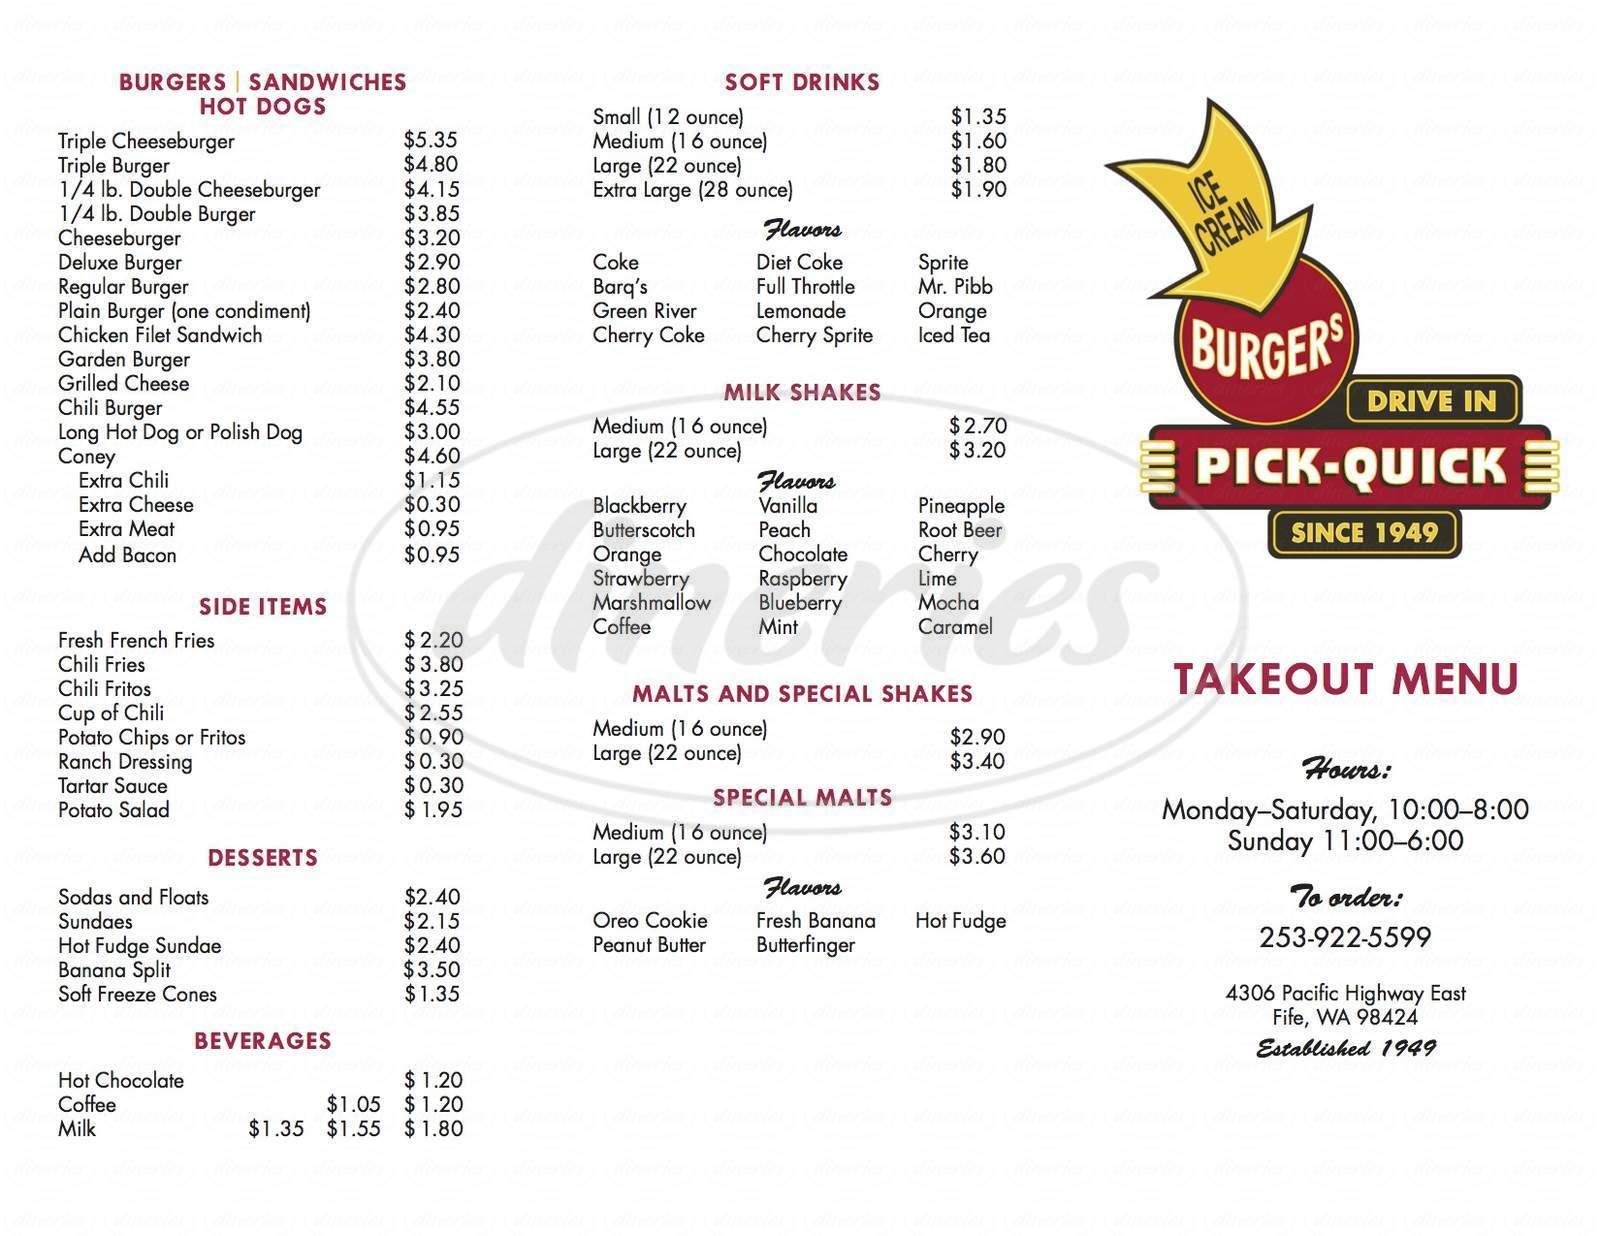 menu for Pick-Quick Drive In